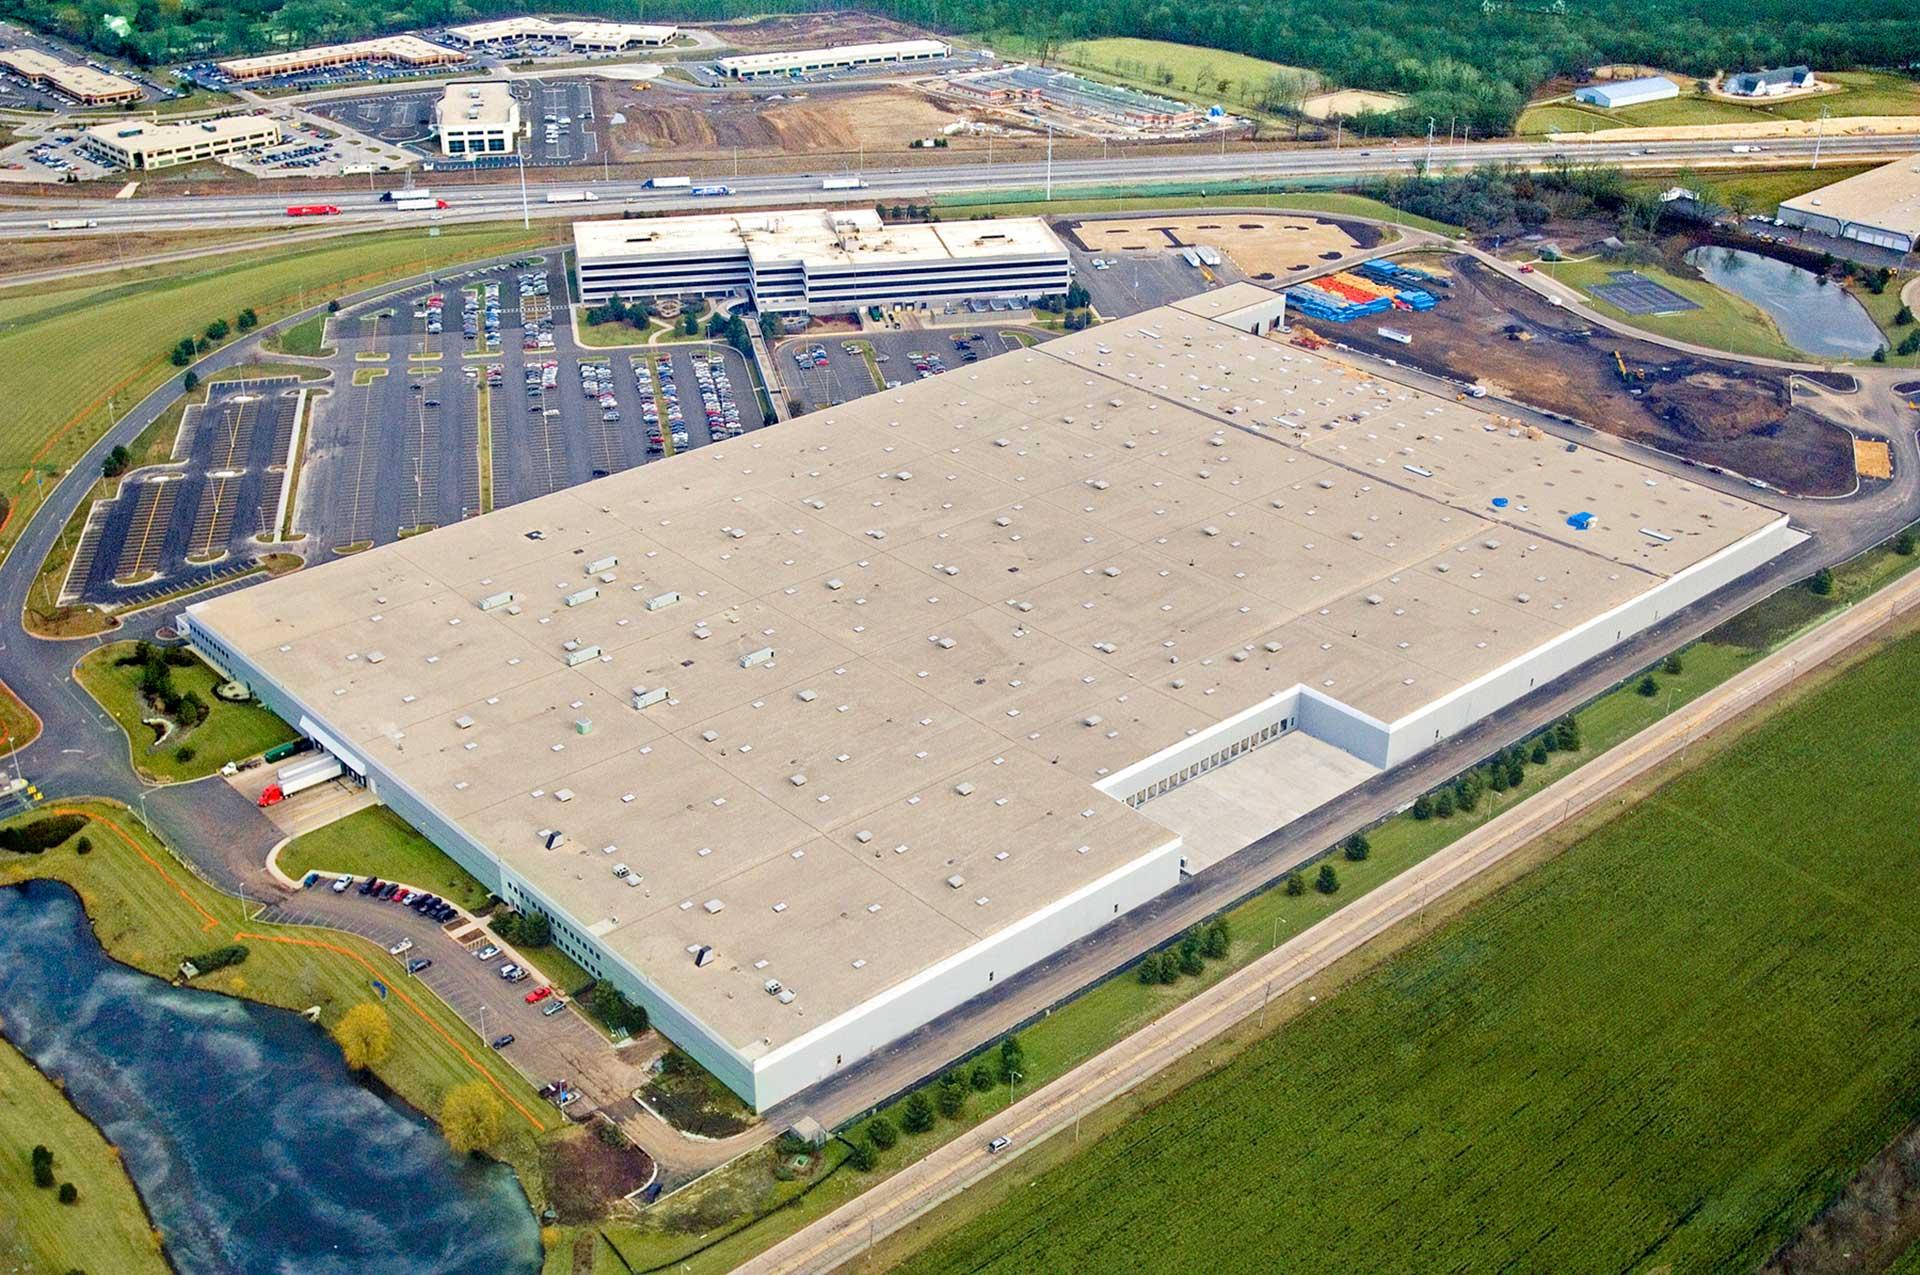 Aerial view of John B. Sanfilippo & Son corporate headquarters and processing/distribution facility